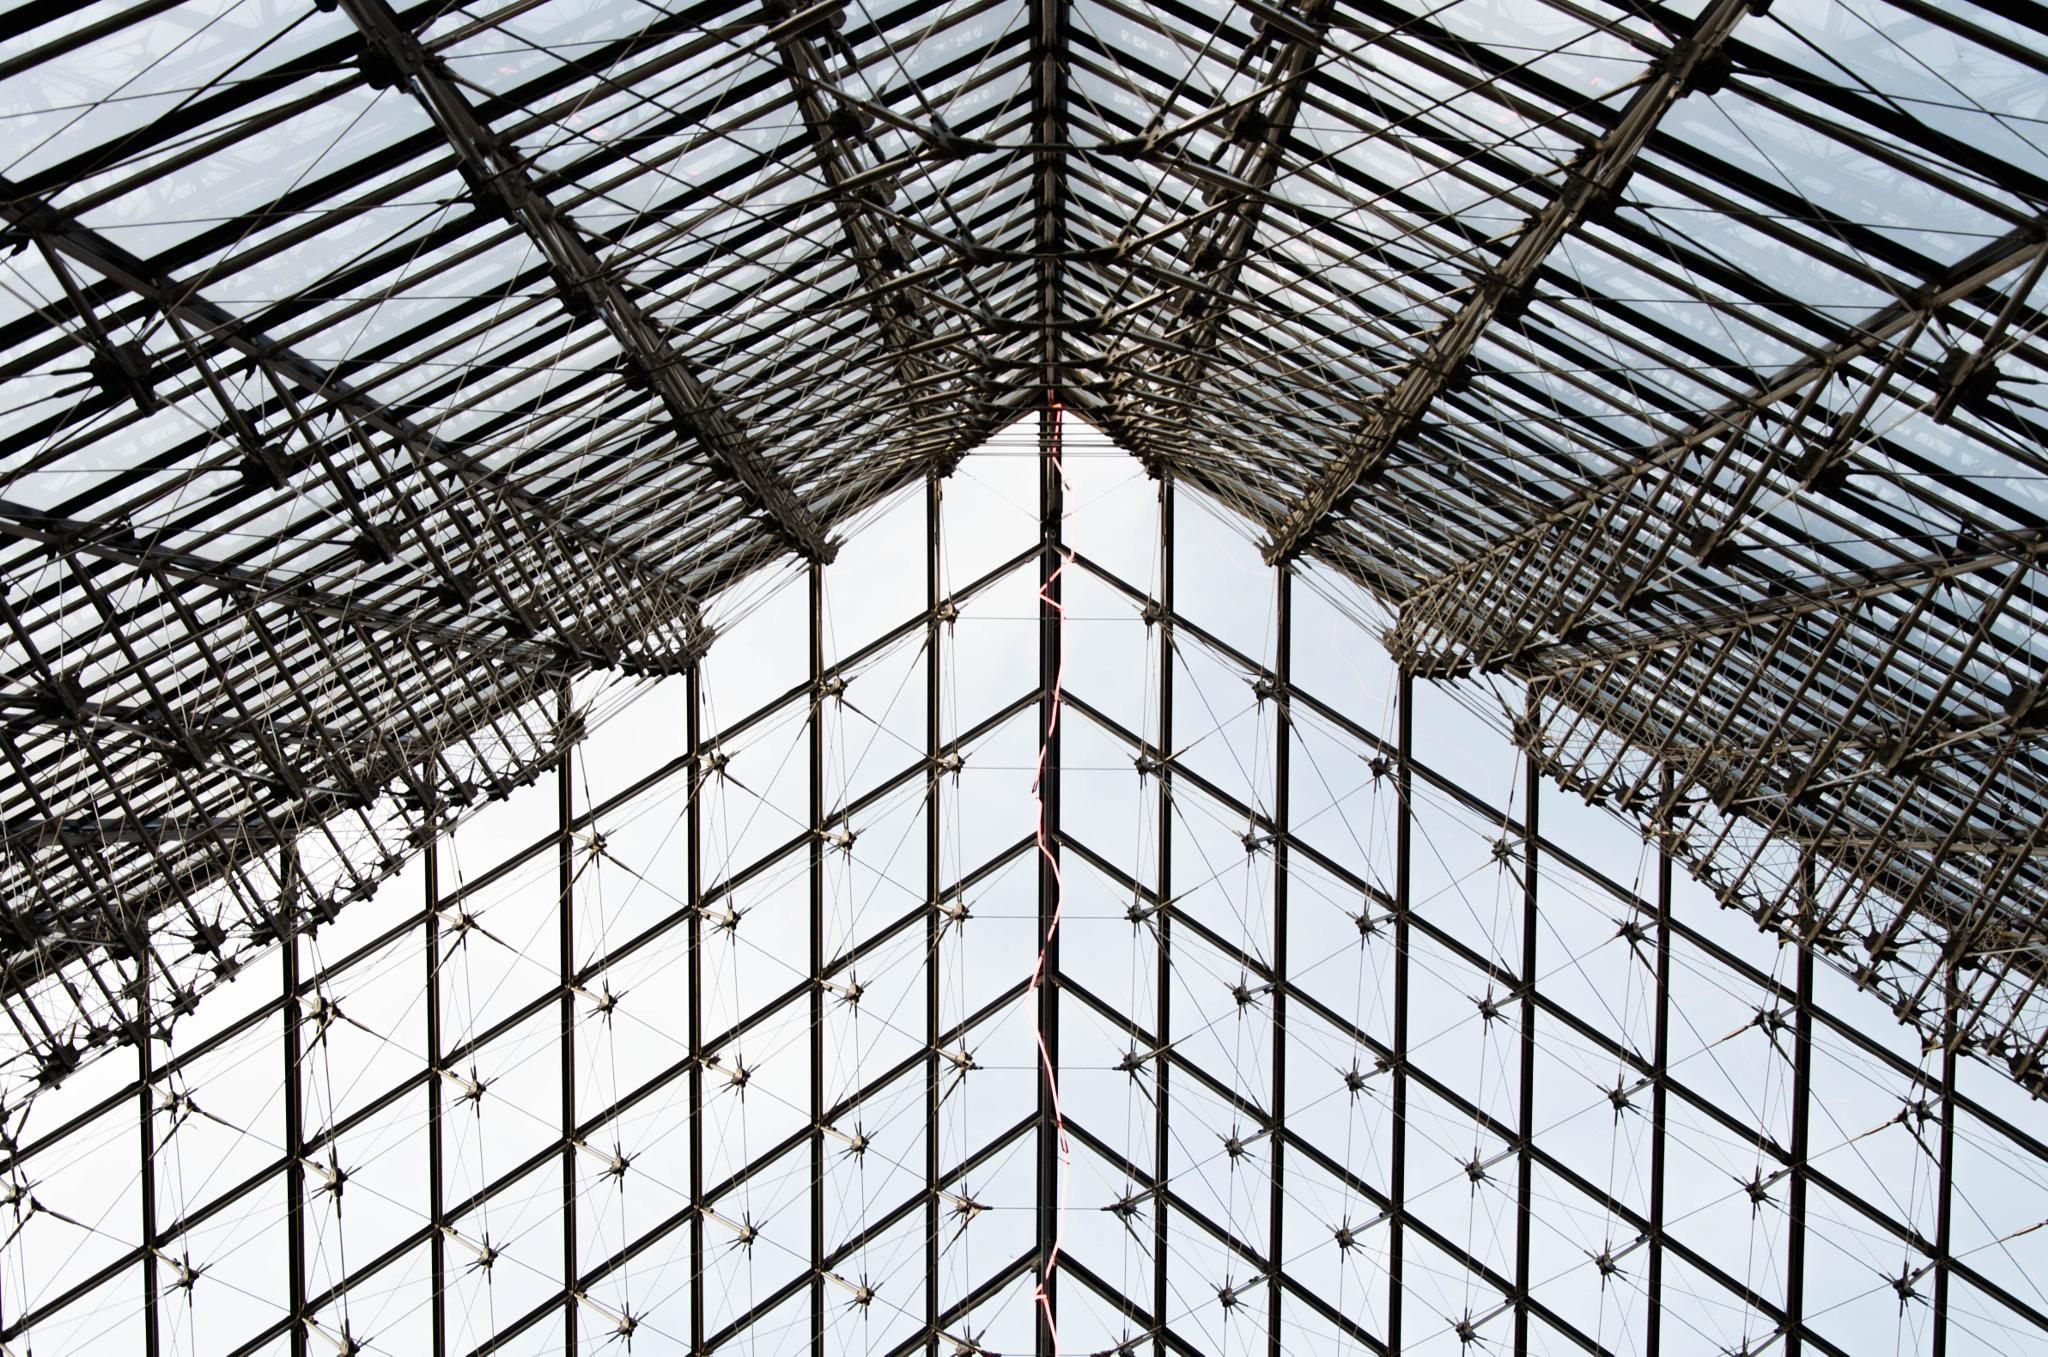 Abstract Louvre by Manuel Atréide